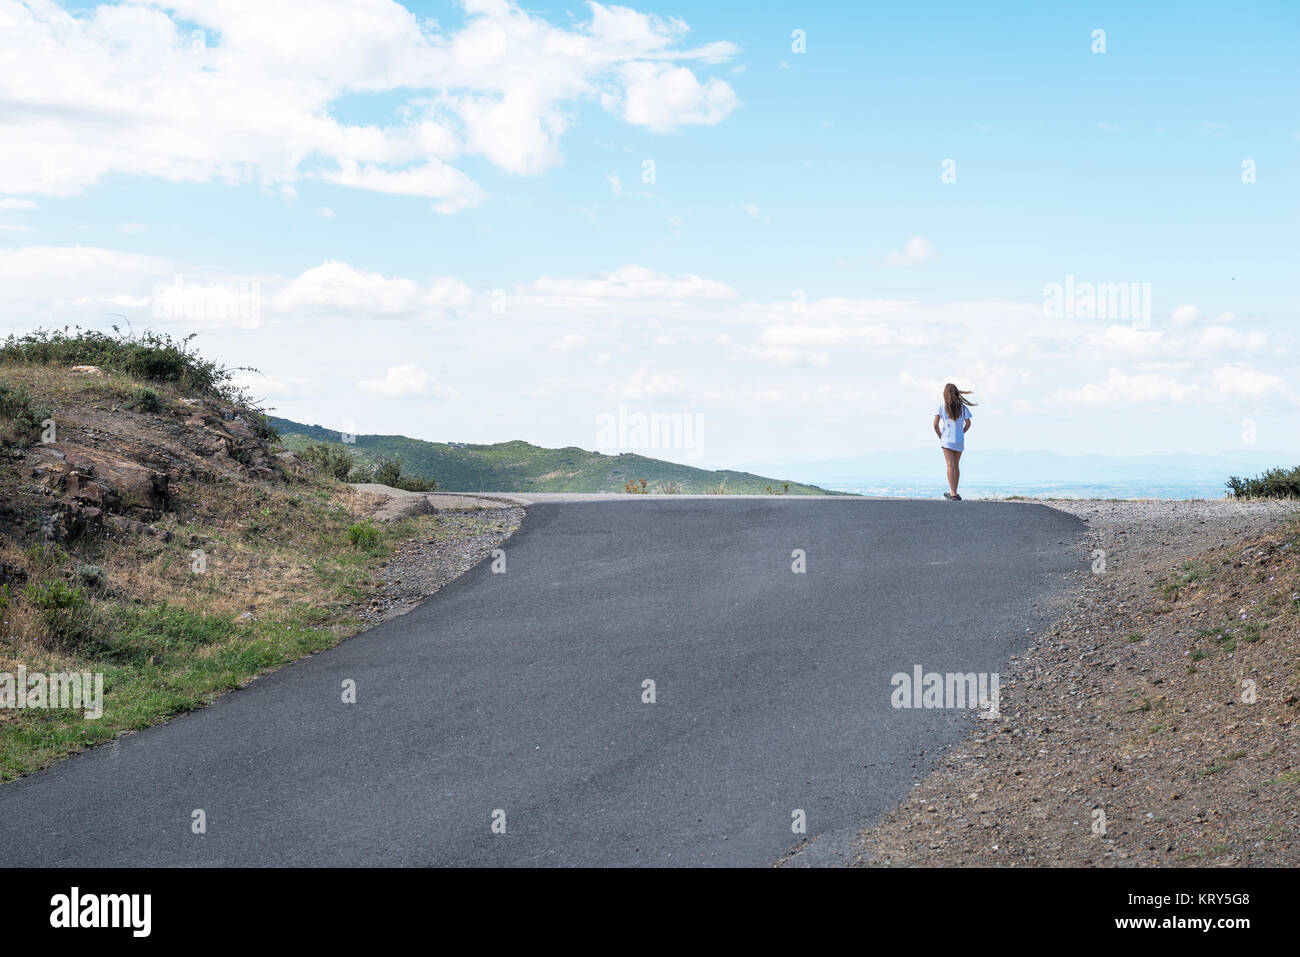 a girl standing on the crest of a rural road - Stock Image